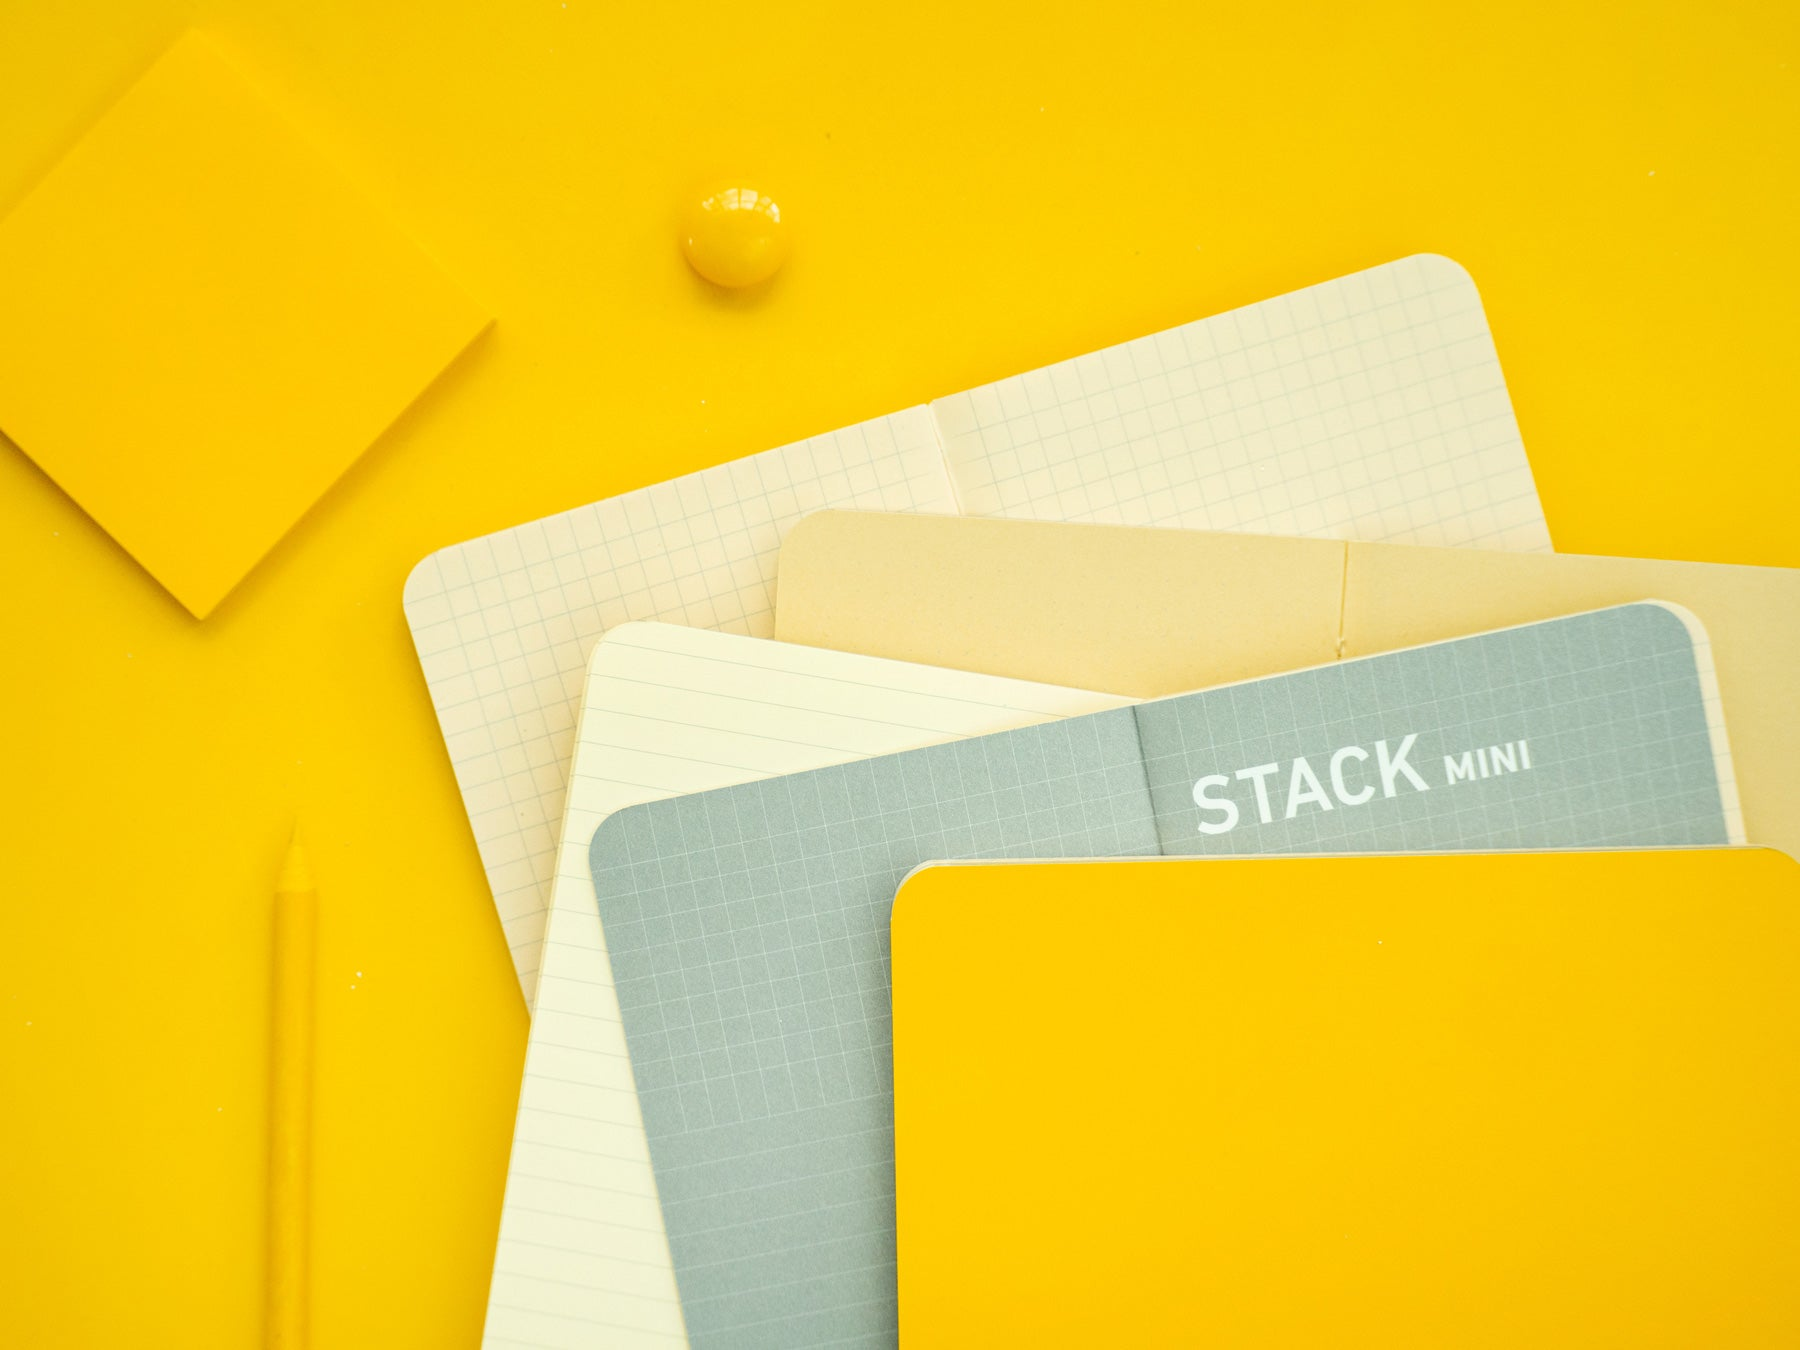 Stack mini Notebook (Limited Edition)